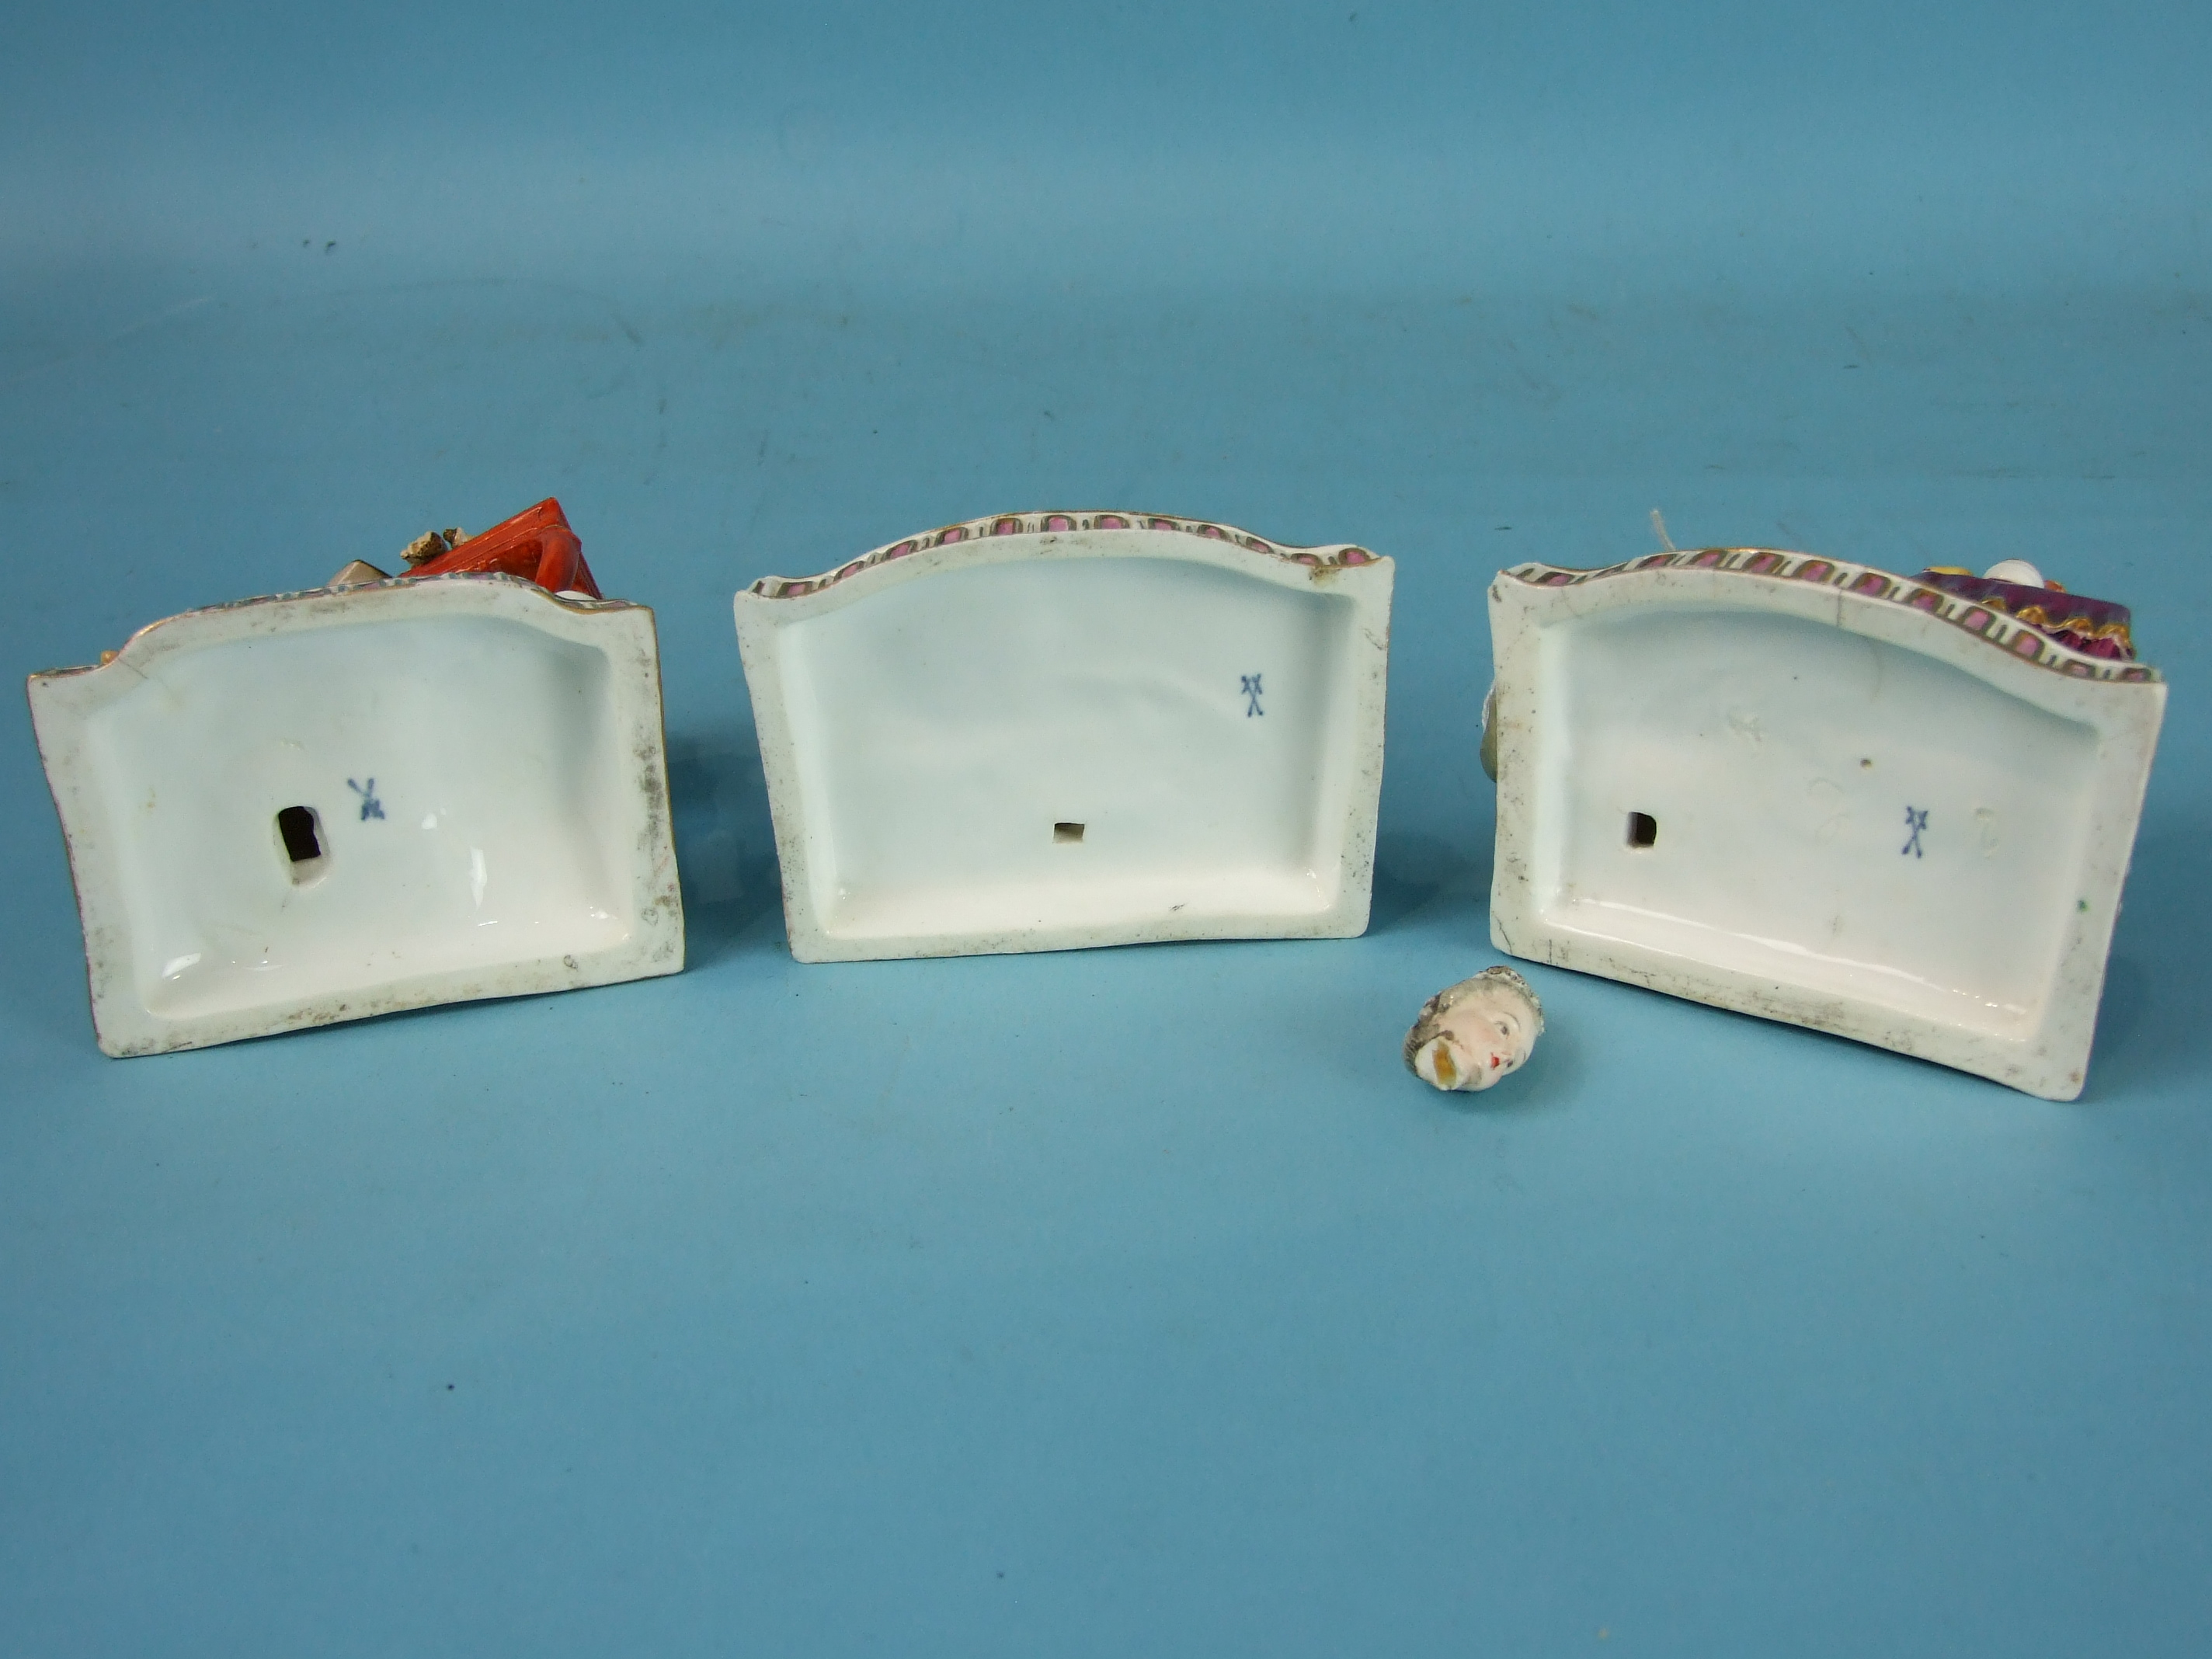 Lot 409 - A set of three English porcelain models of the senses after the Meissen originals by Acier, probably